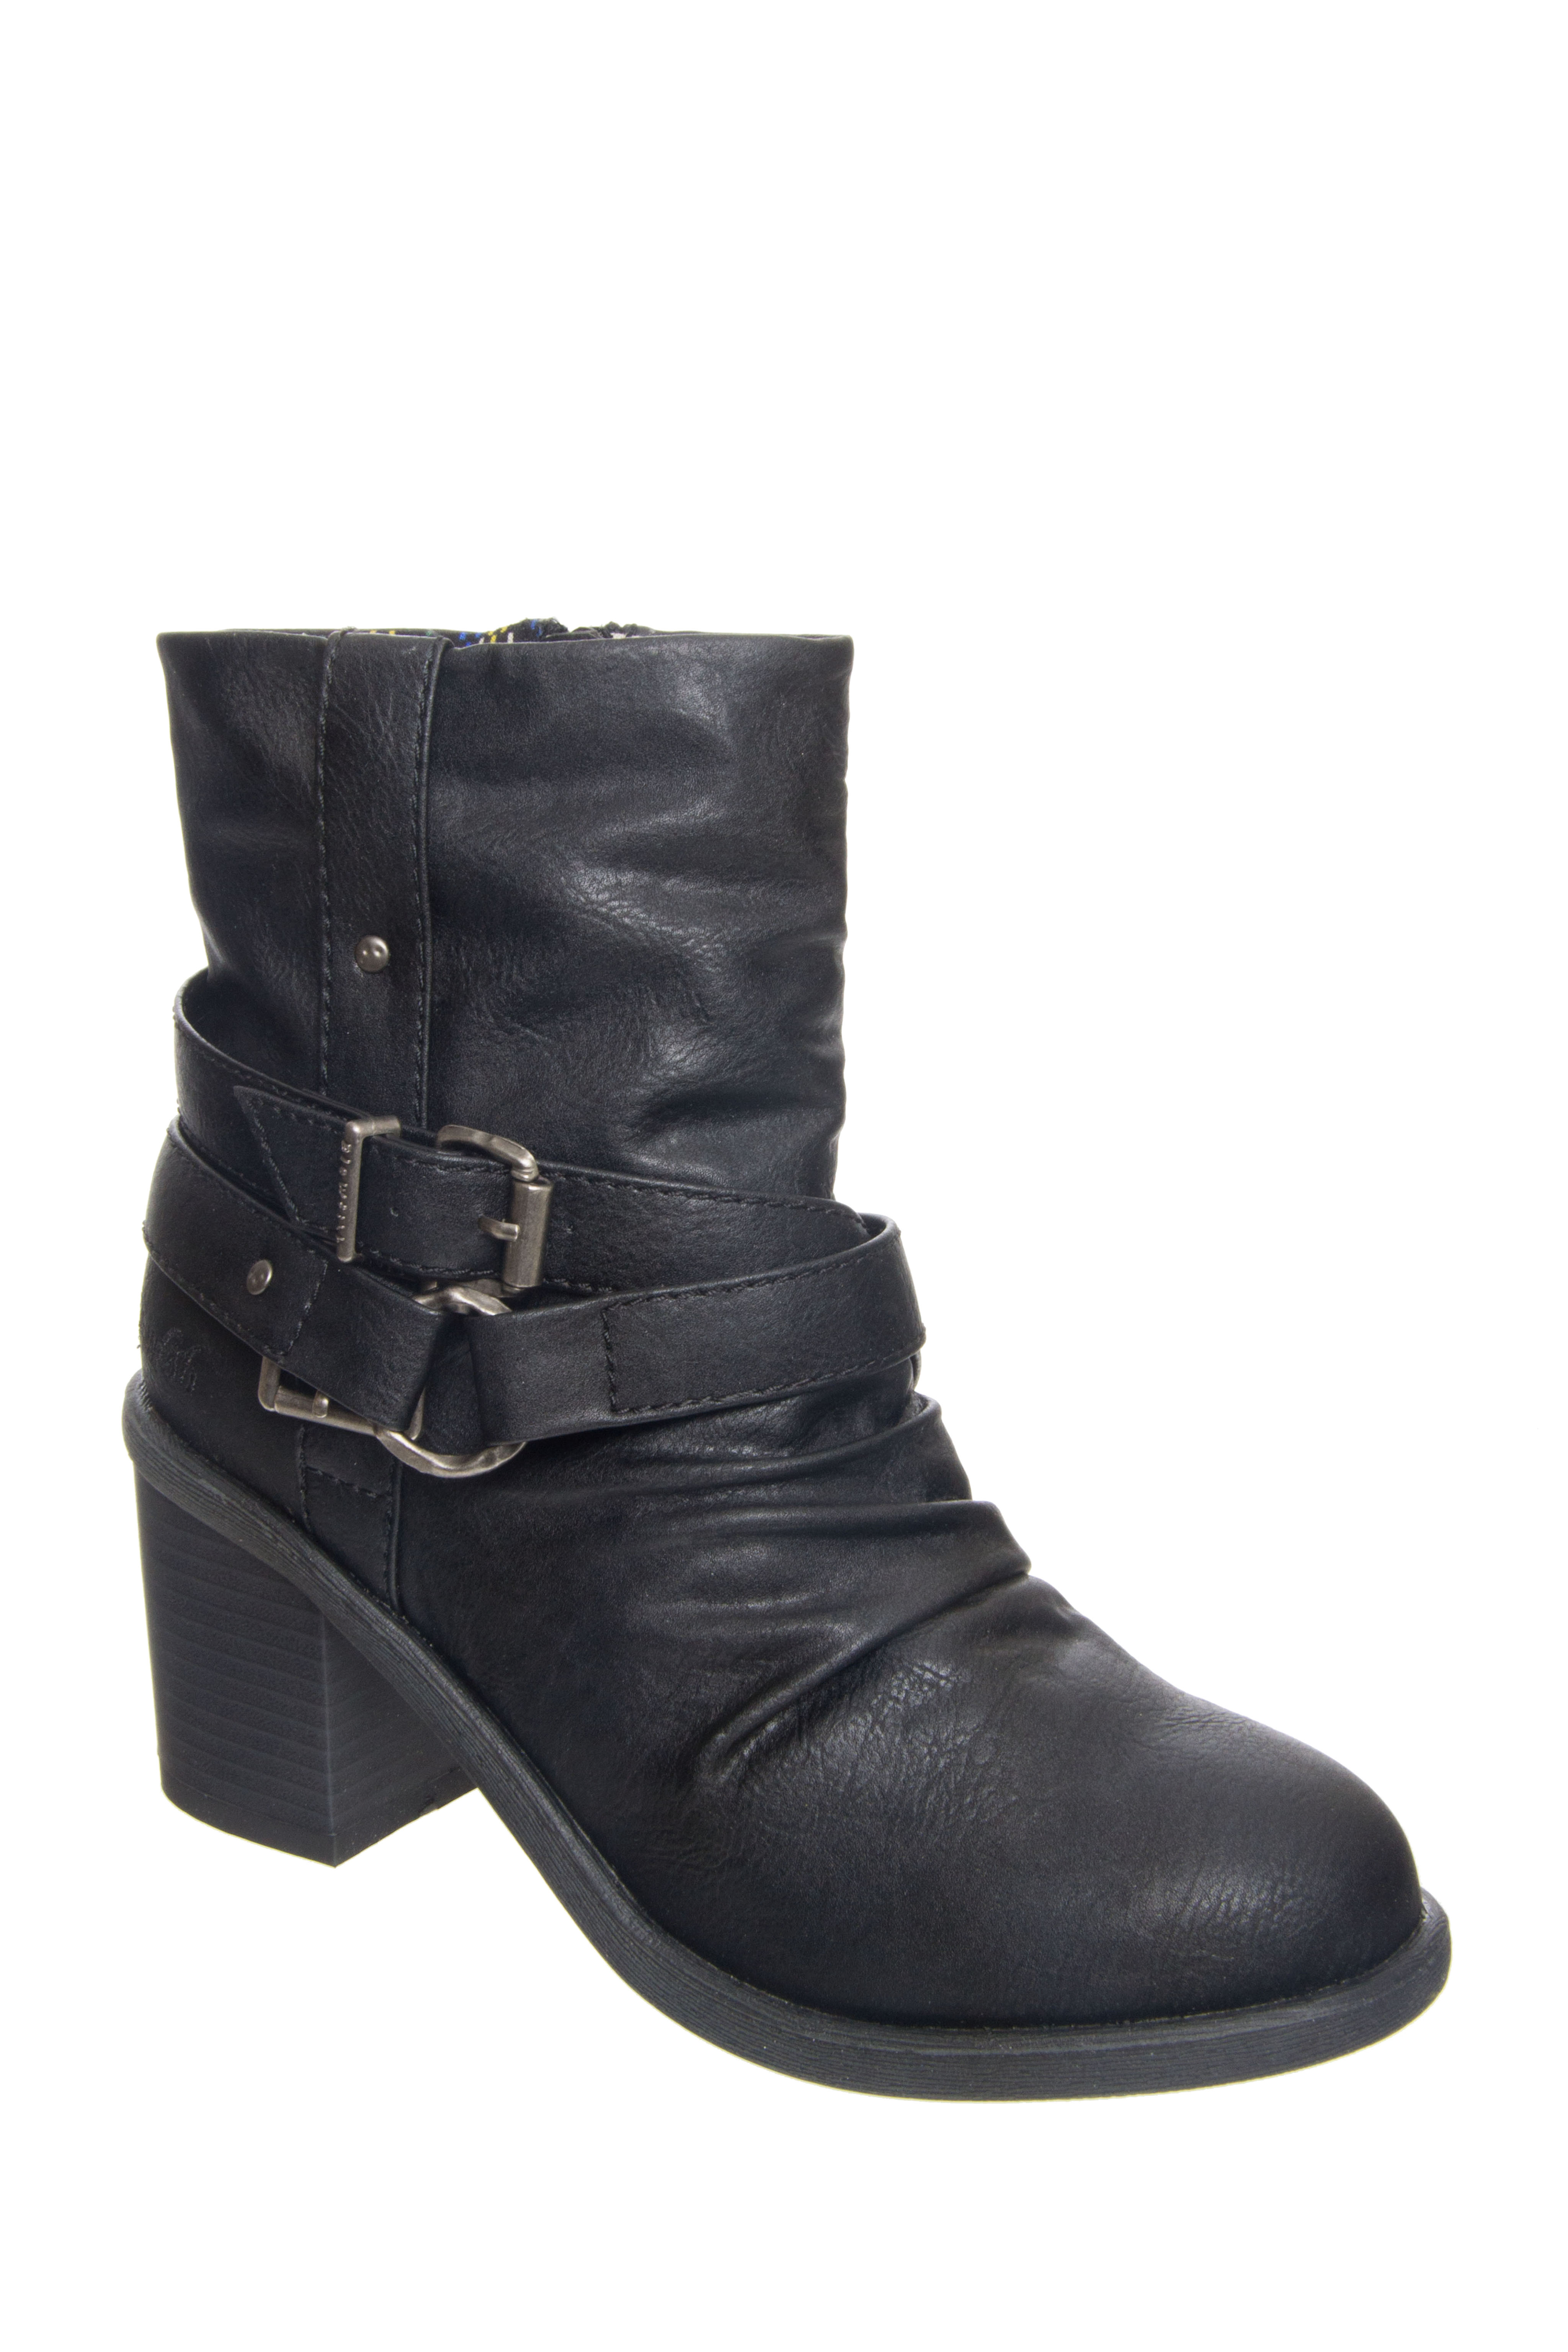 Blowfish Moran Mid Heel Booties - Black